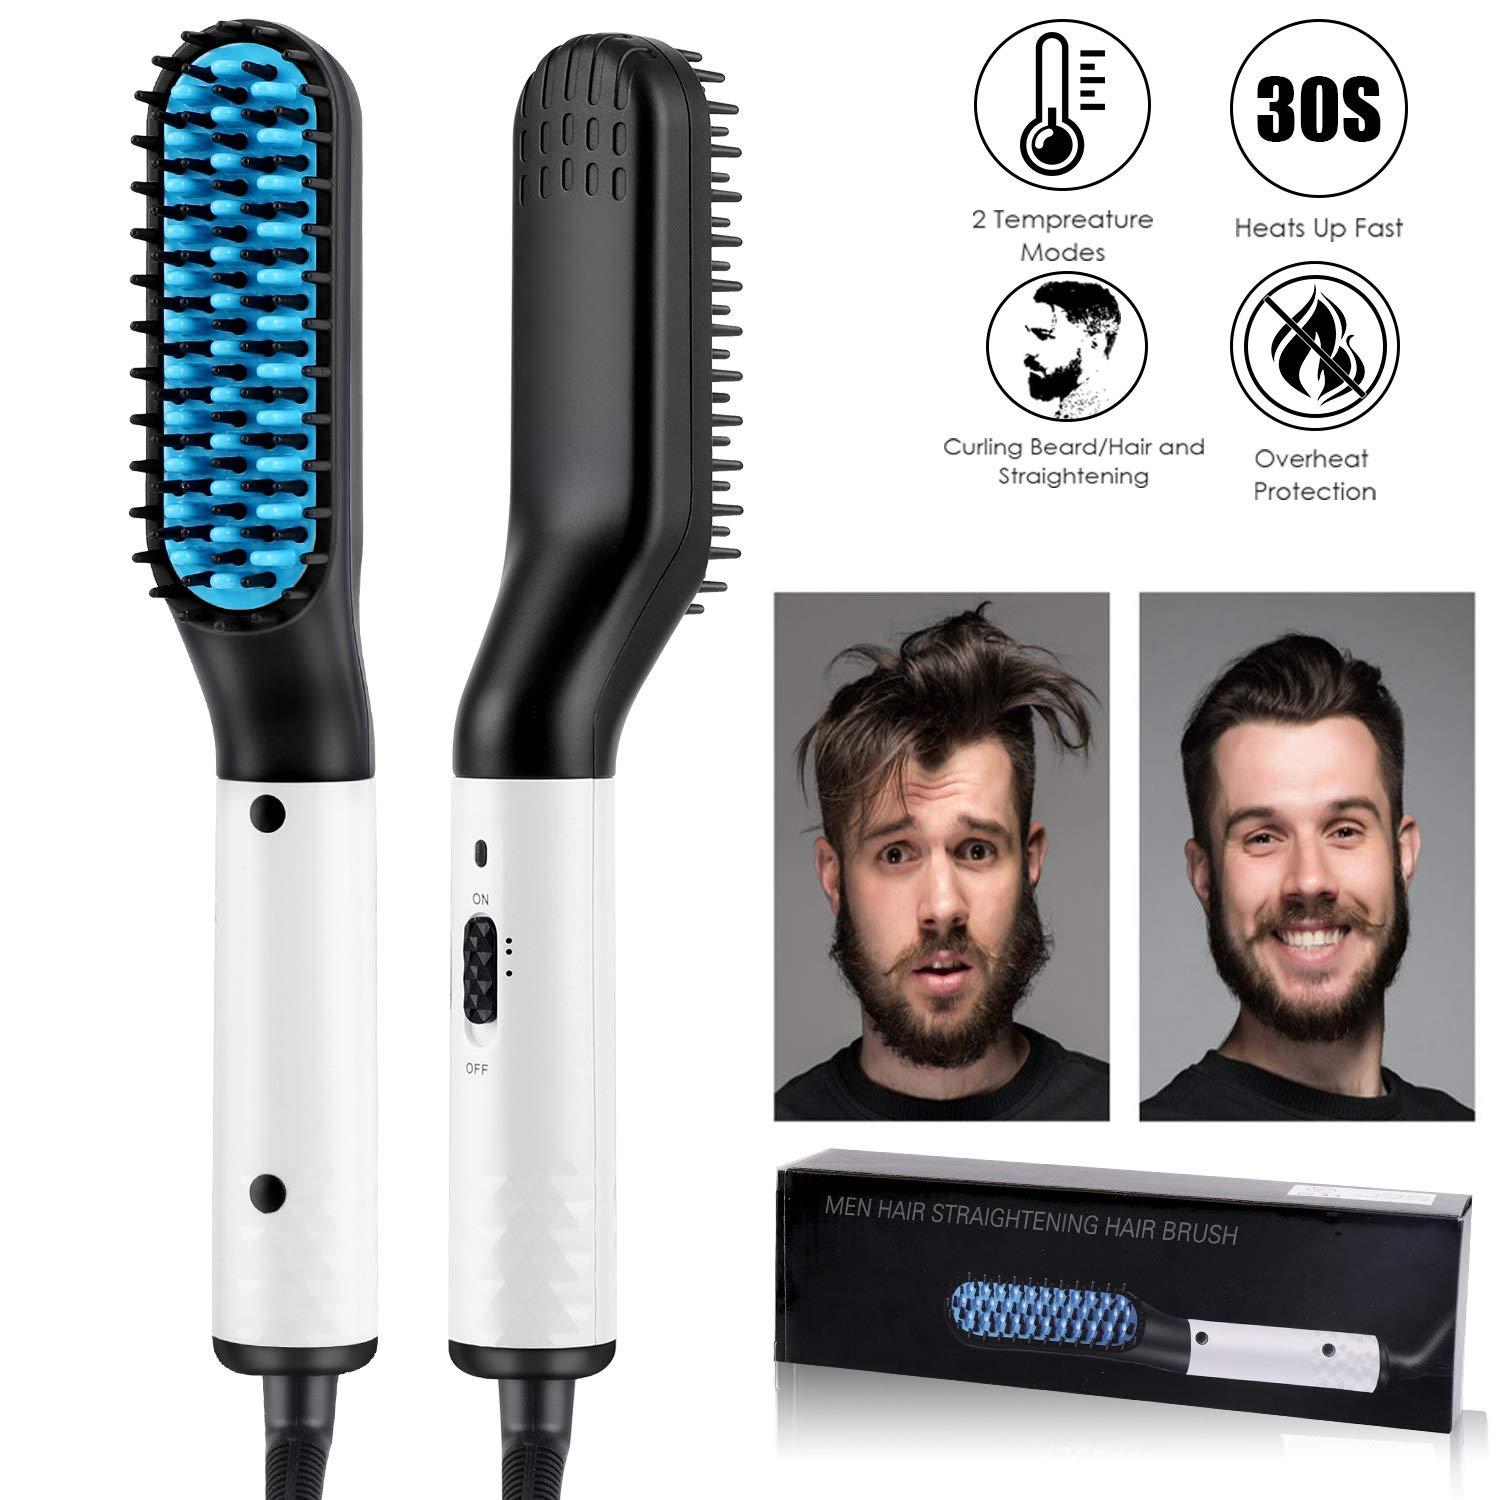 Beard Straightener for men,MOICO Electric Ionic Hair/Beard Straightening Comb for Men-Fast Heat Multifunctional Comb for Beard Grooming And Hair Styling Fast Shaping by MOICO